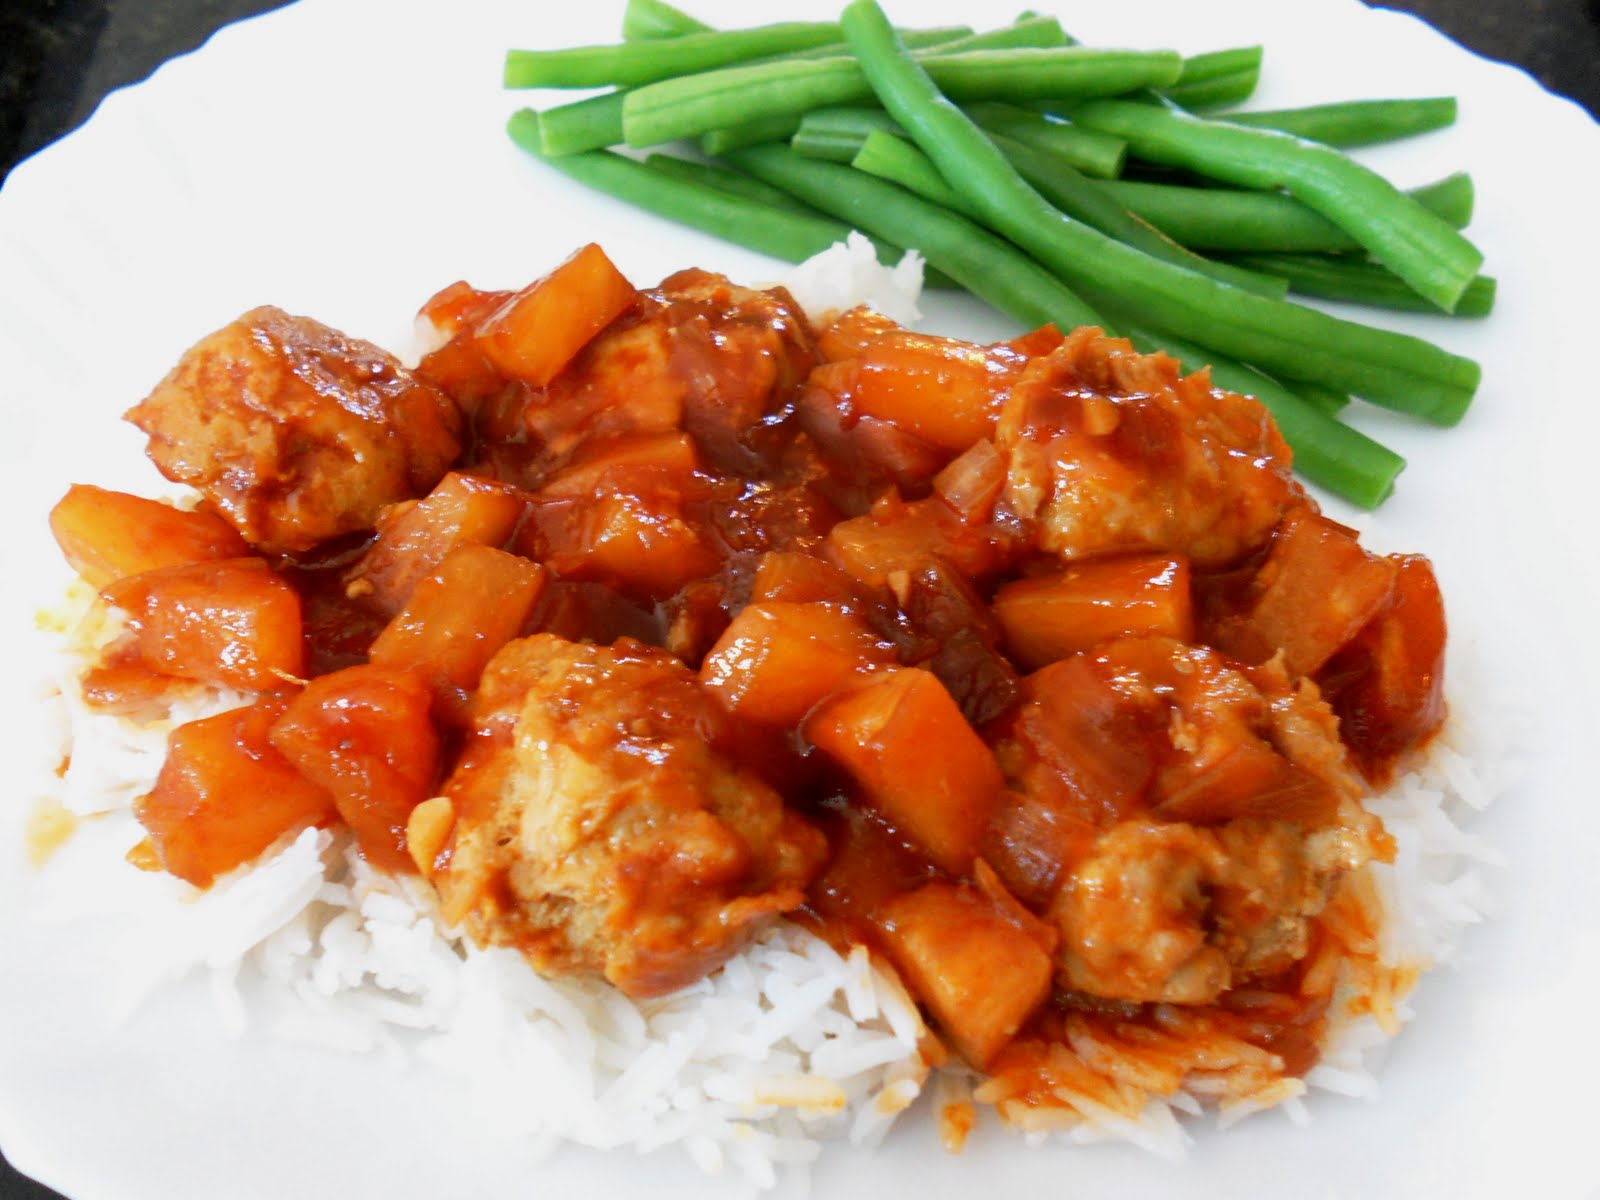 ... Finding the Fun in Food !: Scrumptious Sweet and Sour Chicken Balls